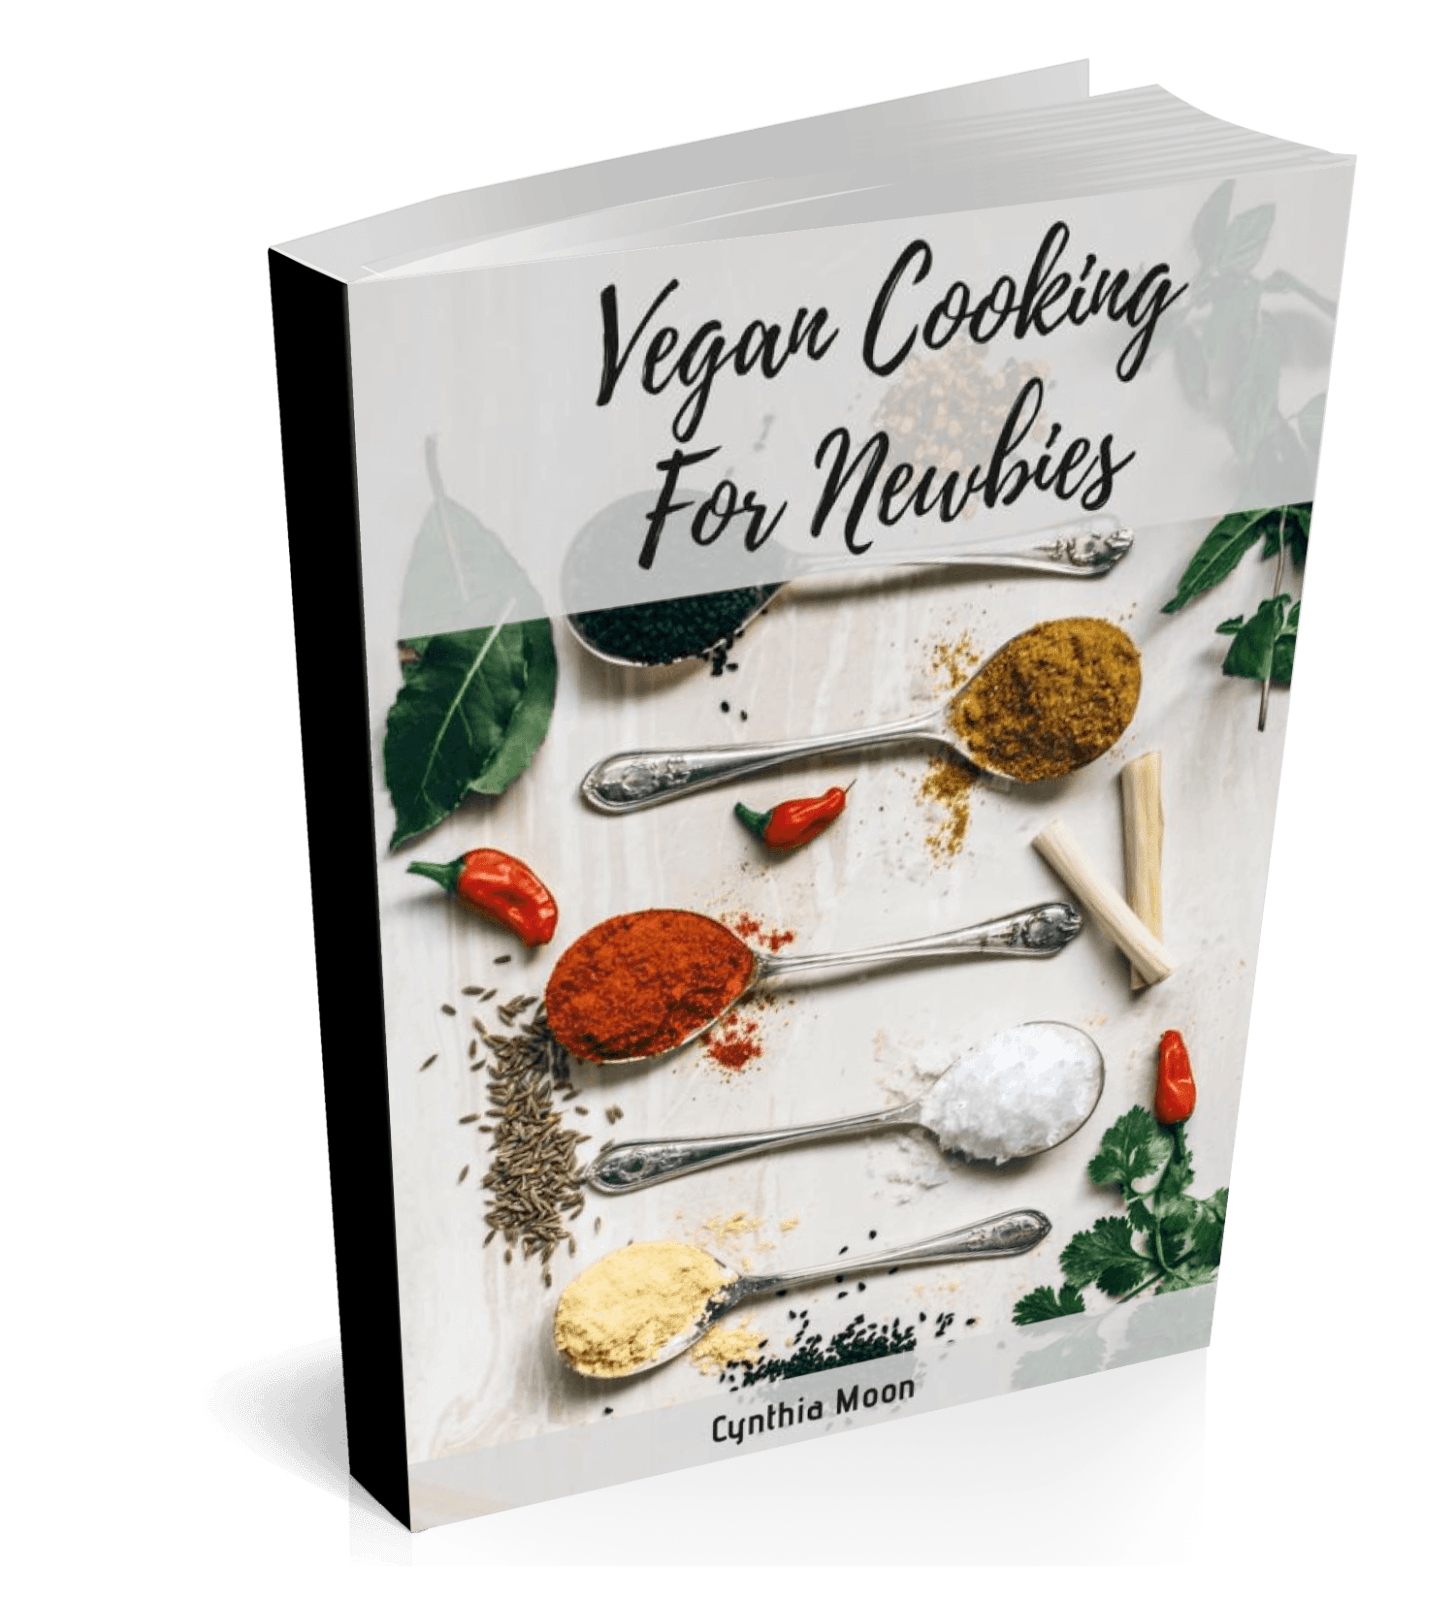 vegan cooking for newbies cover 2